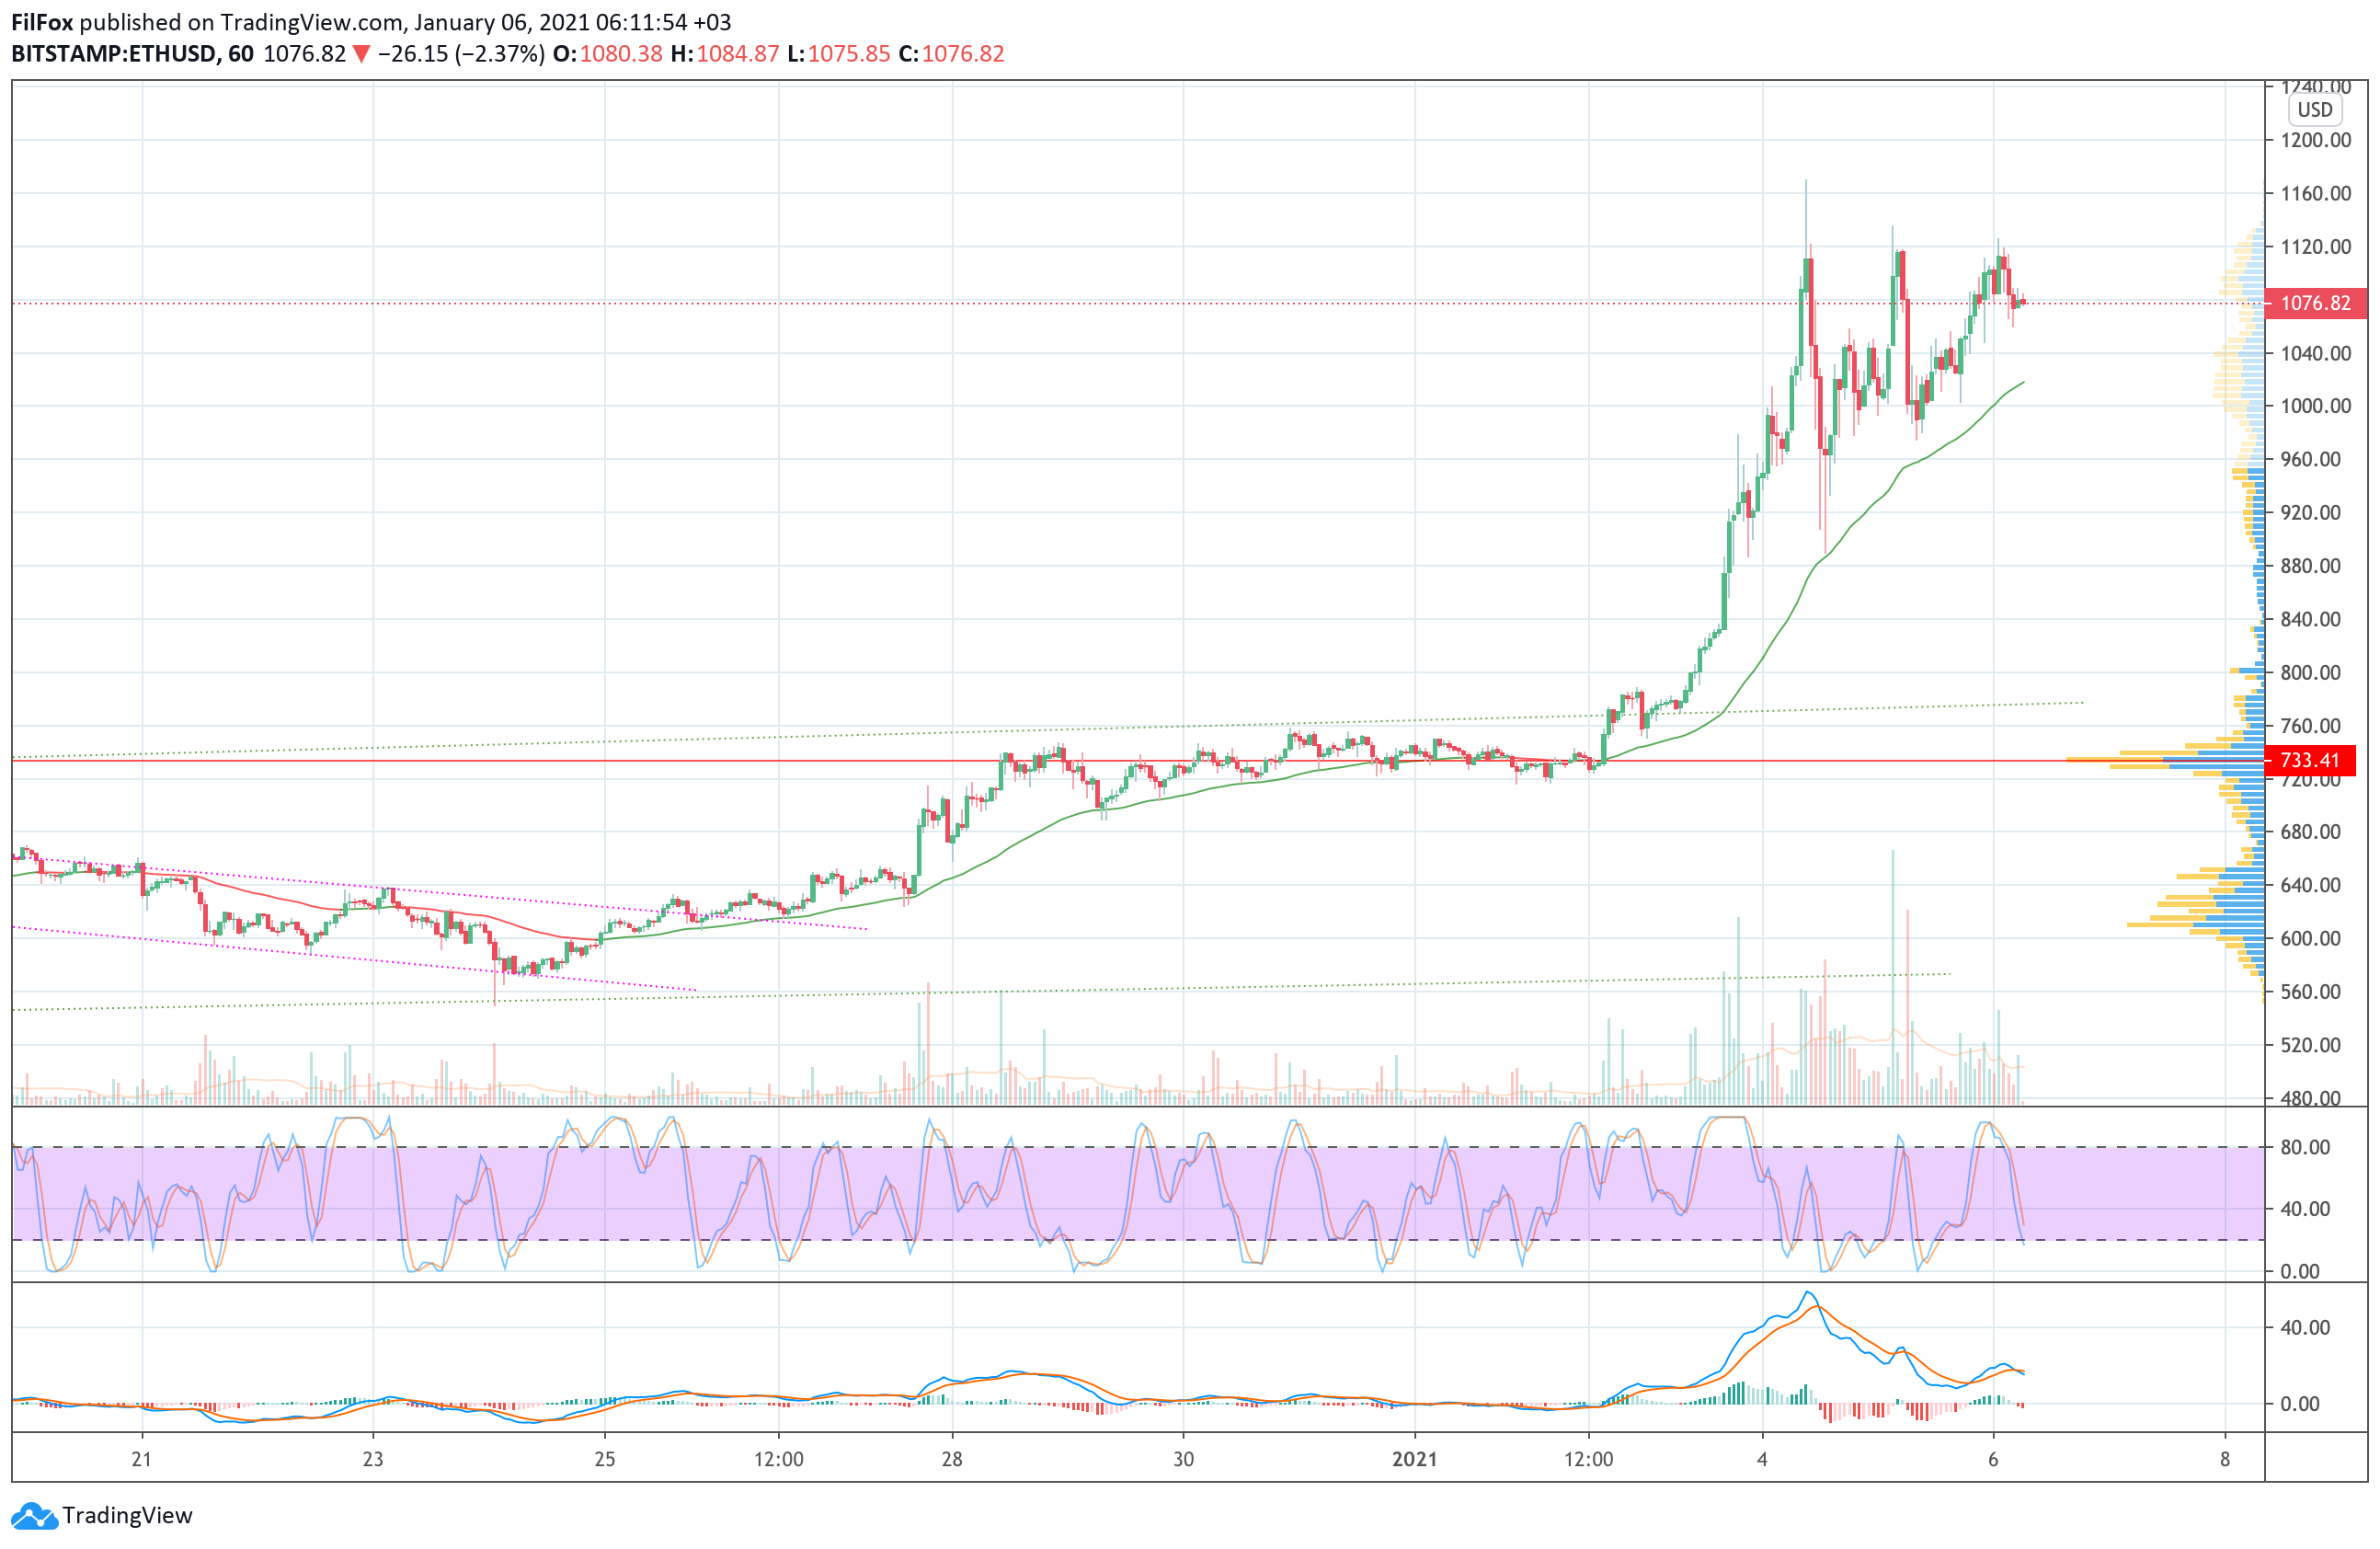 Analysis of prices for Bitcoin, Ethereum, Ripple for 01/06/2021